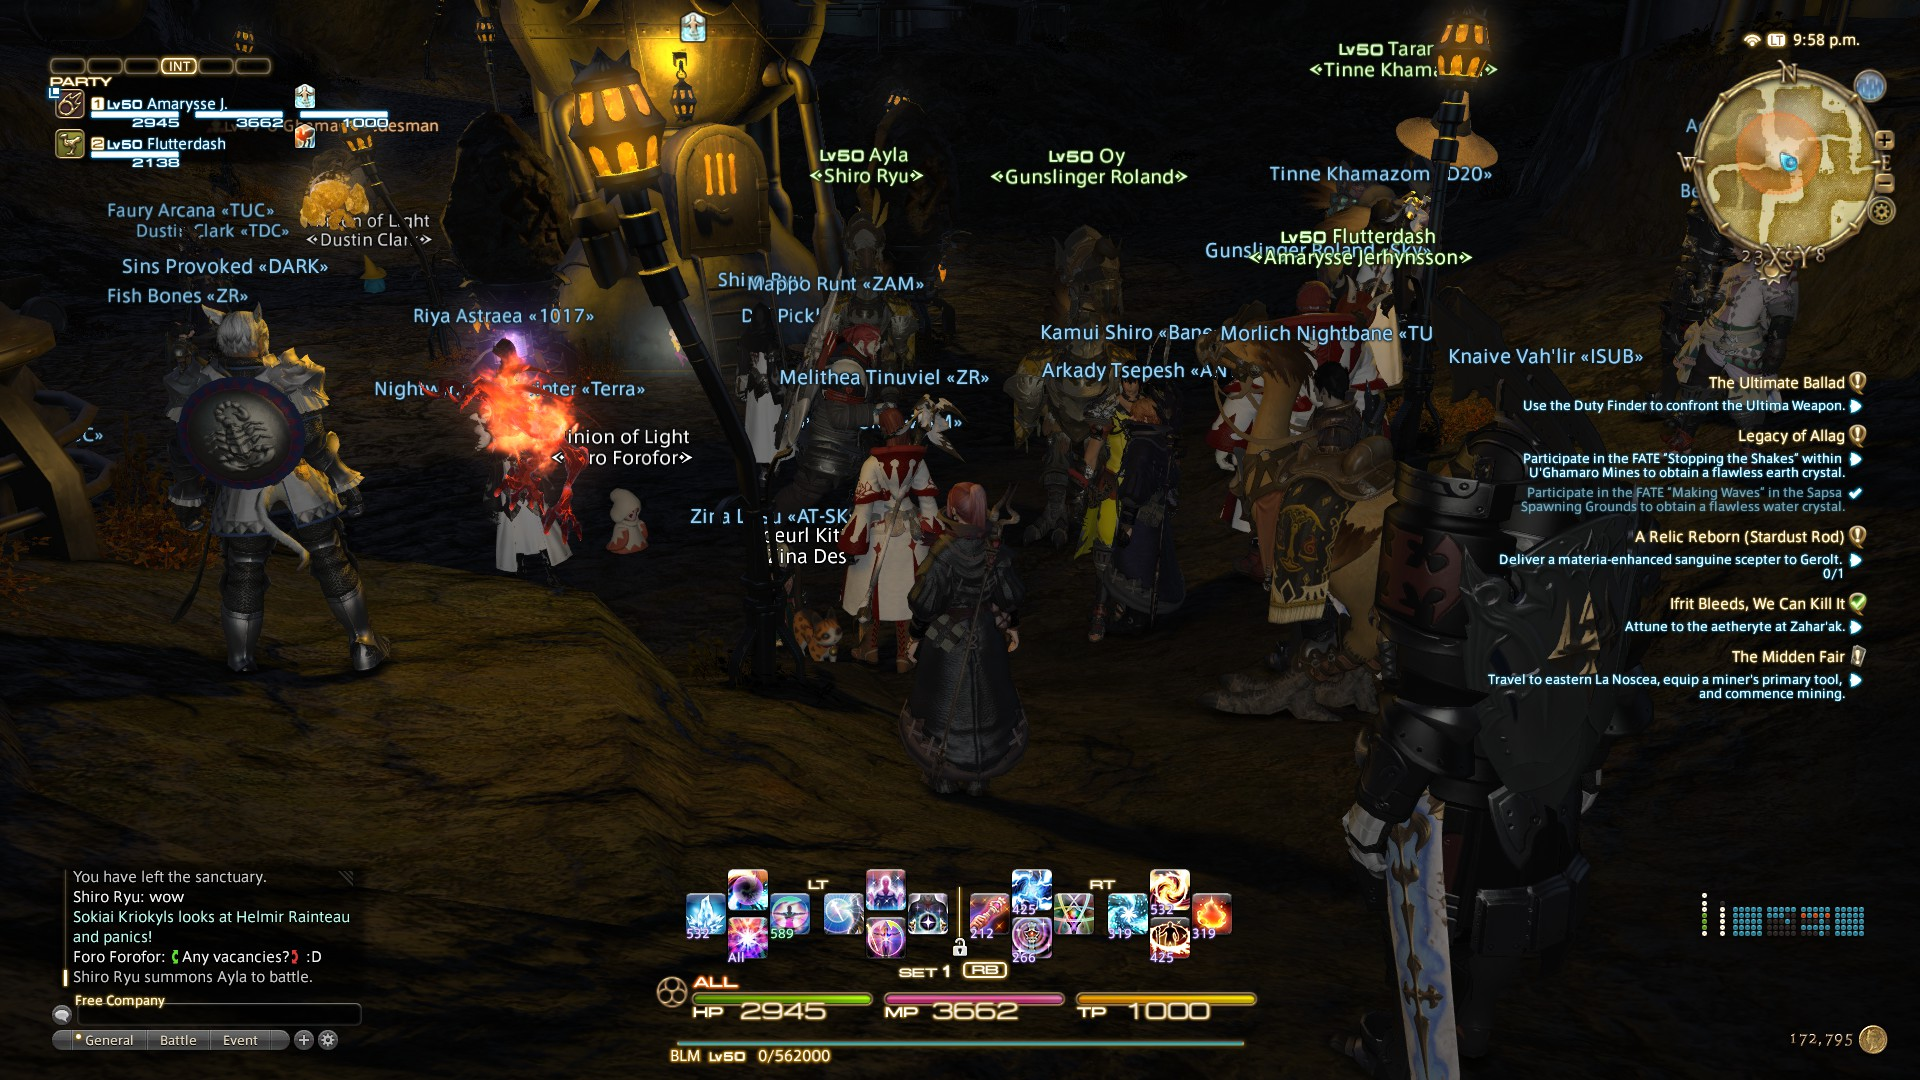 2013 in Review: Final Fantasy XIV: The Game of the Year No